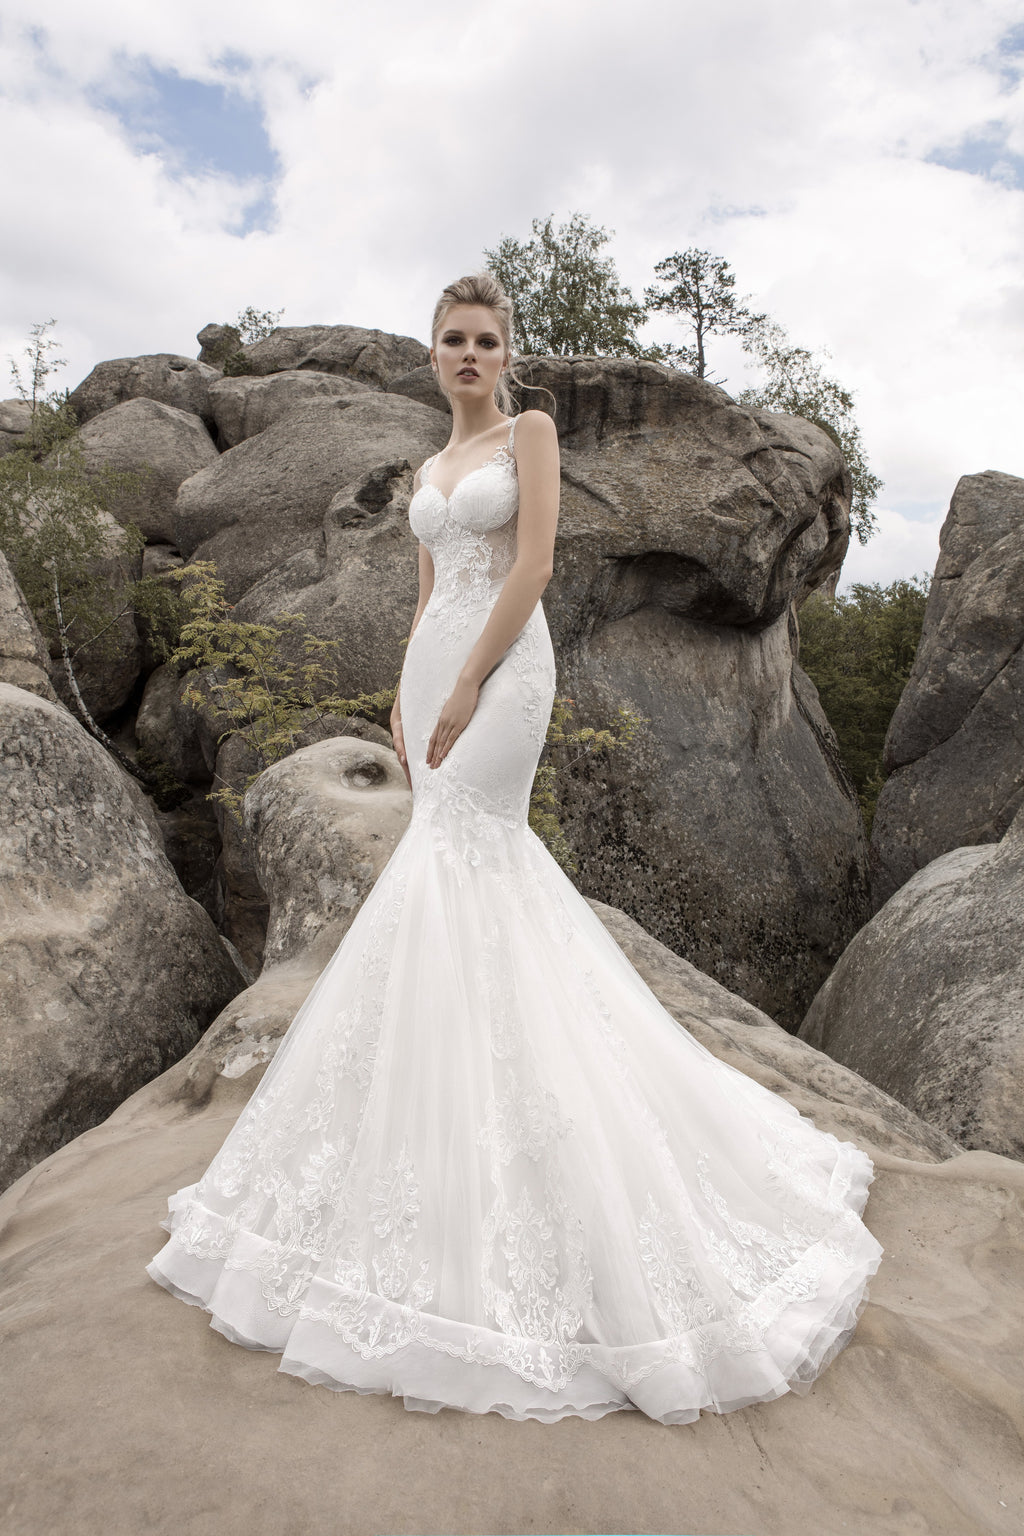 This unique mermaid gown has a sheer lace bodice and features an illusion lace back.